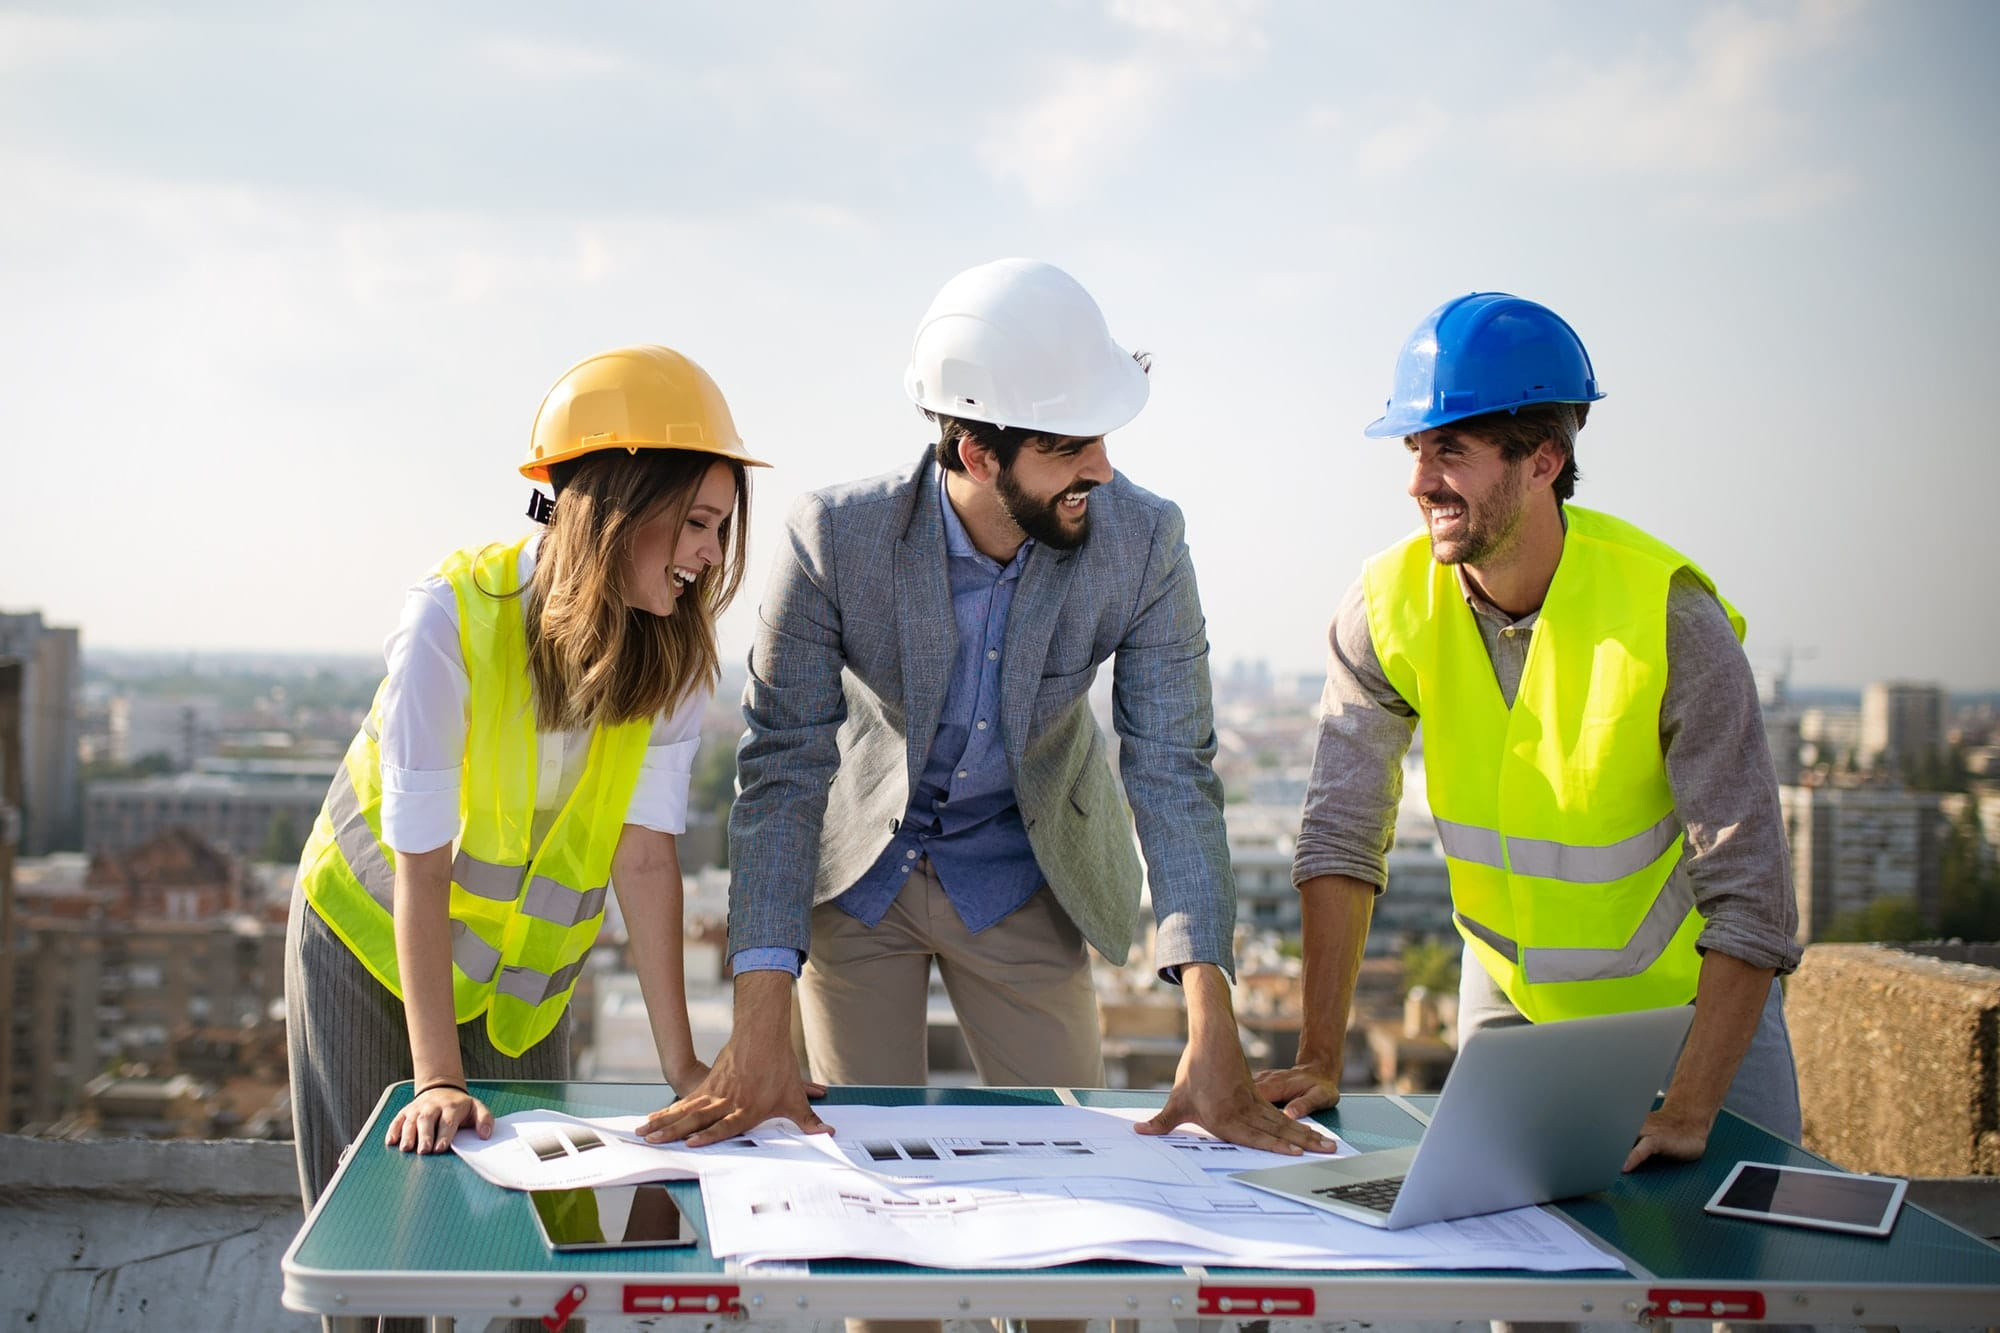 Group of engineers, architects, business partners at construction site working together